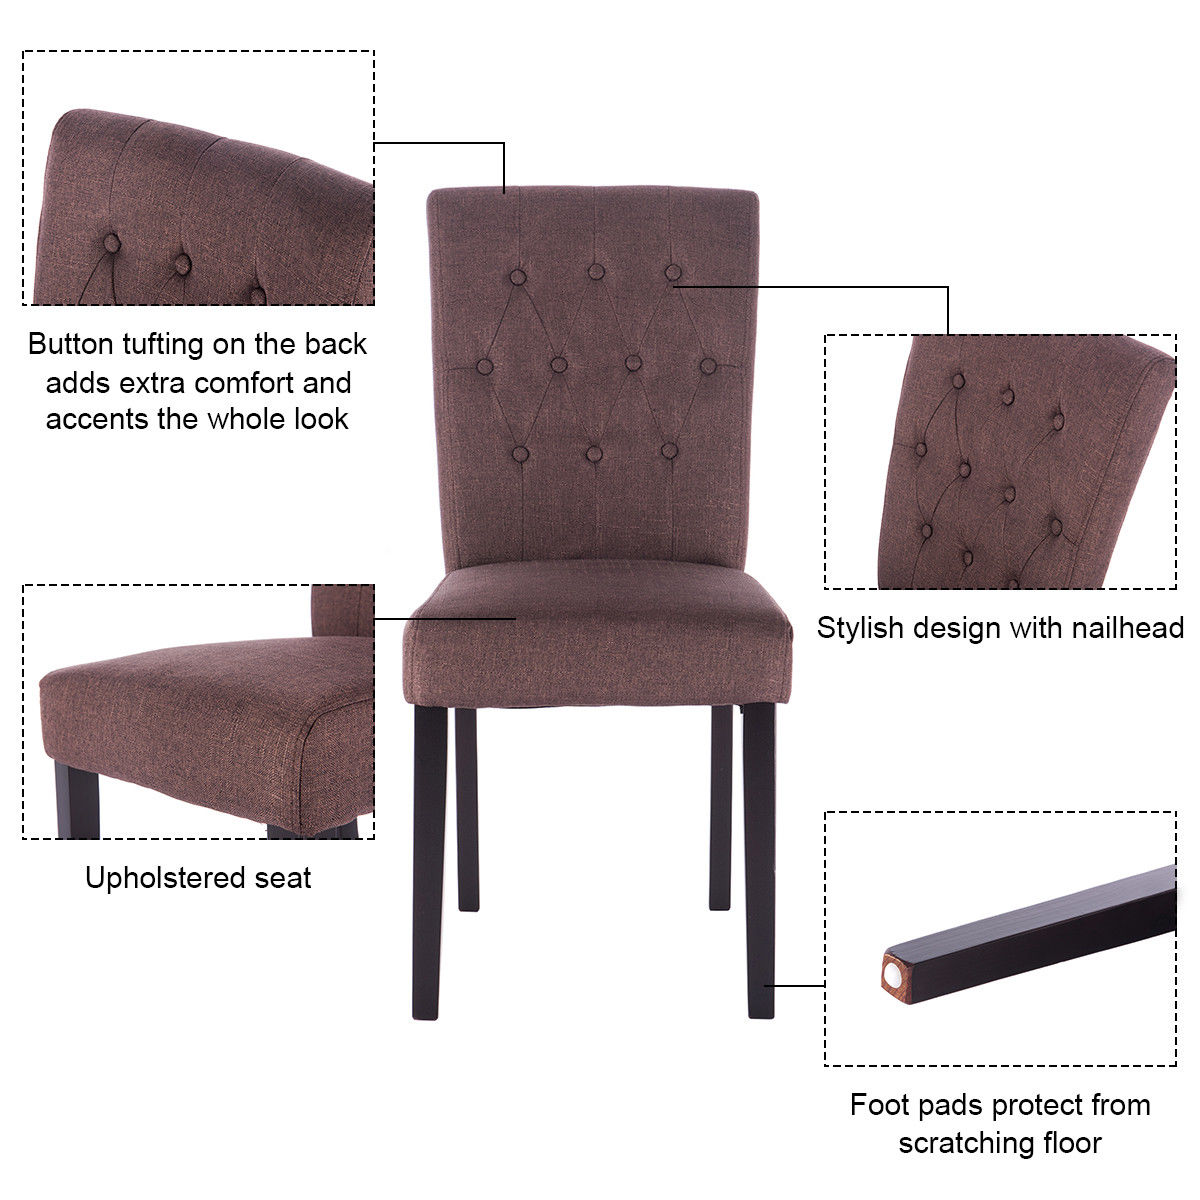 Giantex Set Of 2 Modern Dining Chair Fabric Armless Accent Tufted  Upholstered With Solid Wood Legs Furniture HW52778BN In Dining Chairs From  Furniture On ...